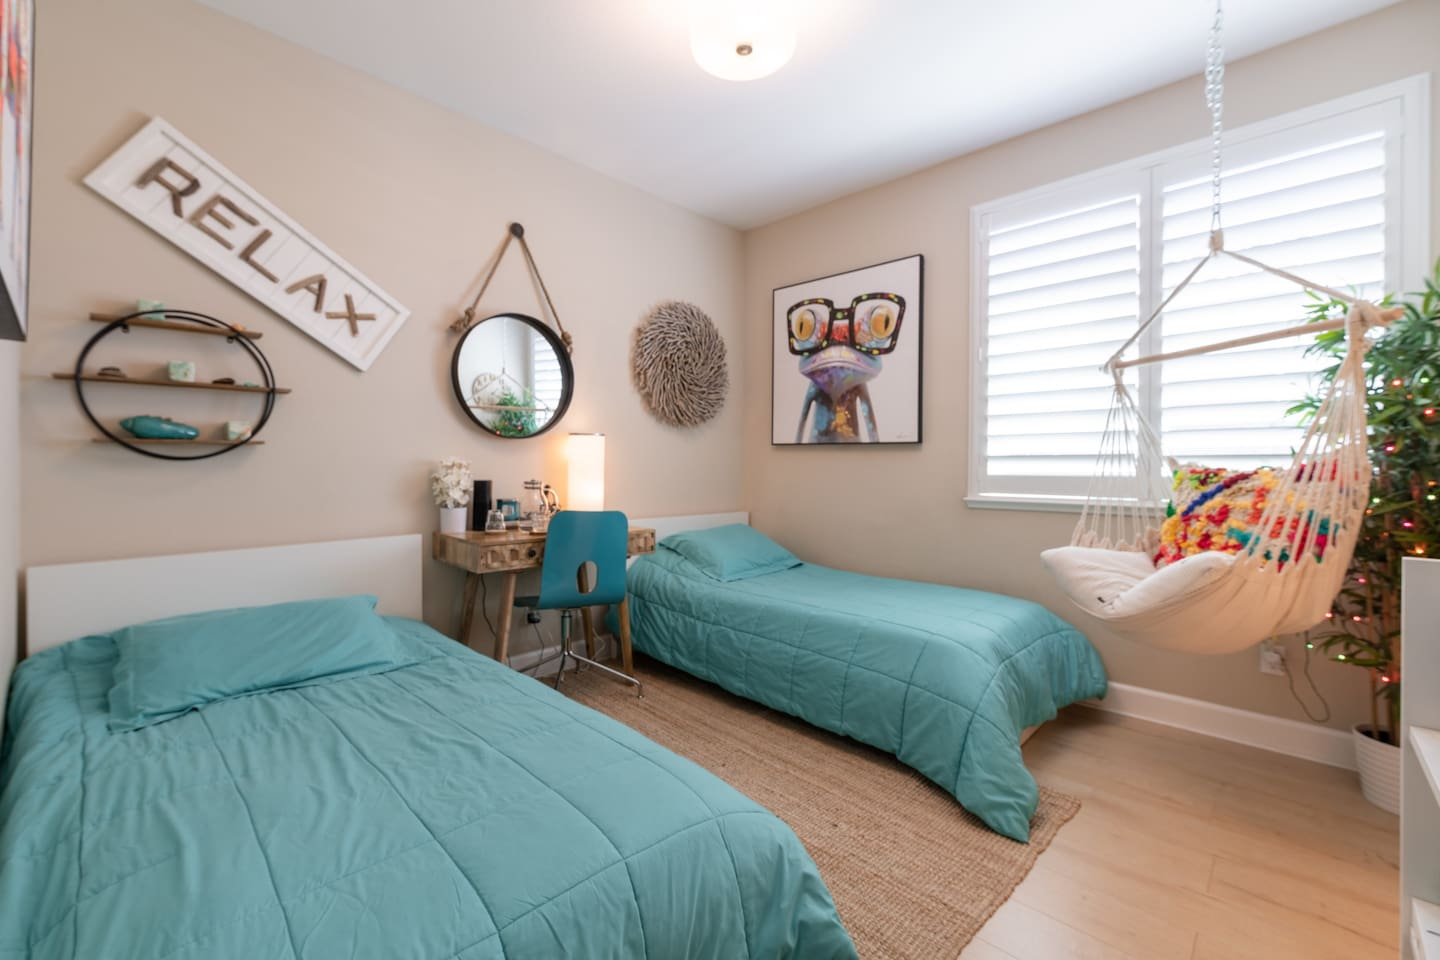 Happy Home, a cozy colorful feel good room that would help you relax and be happy. Pictures were taken with wide angle lenses which makes one of the beds look bigger.  They are both twin size beds.